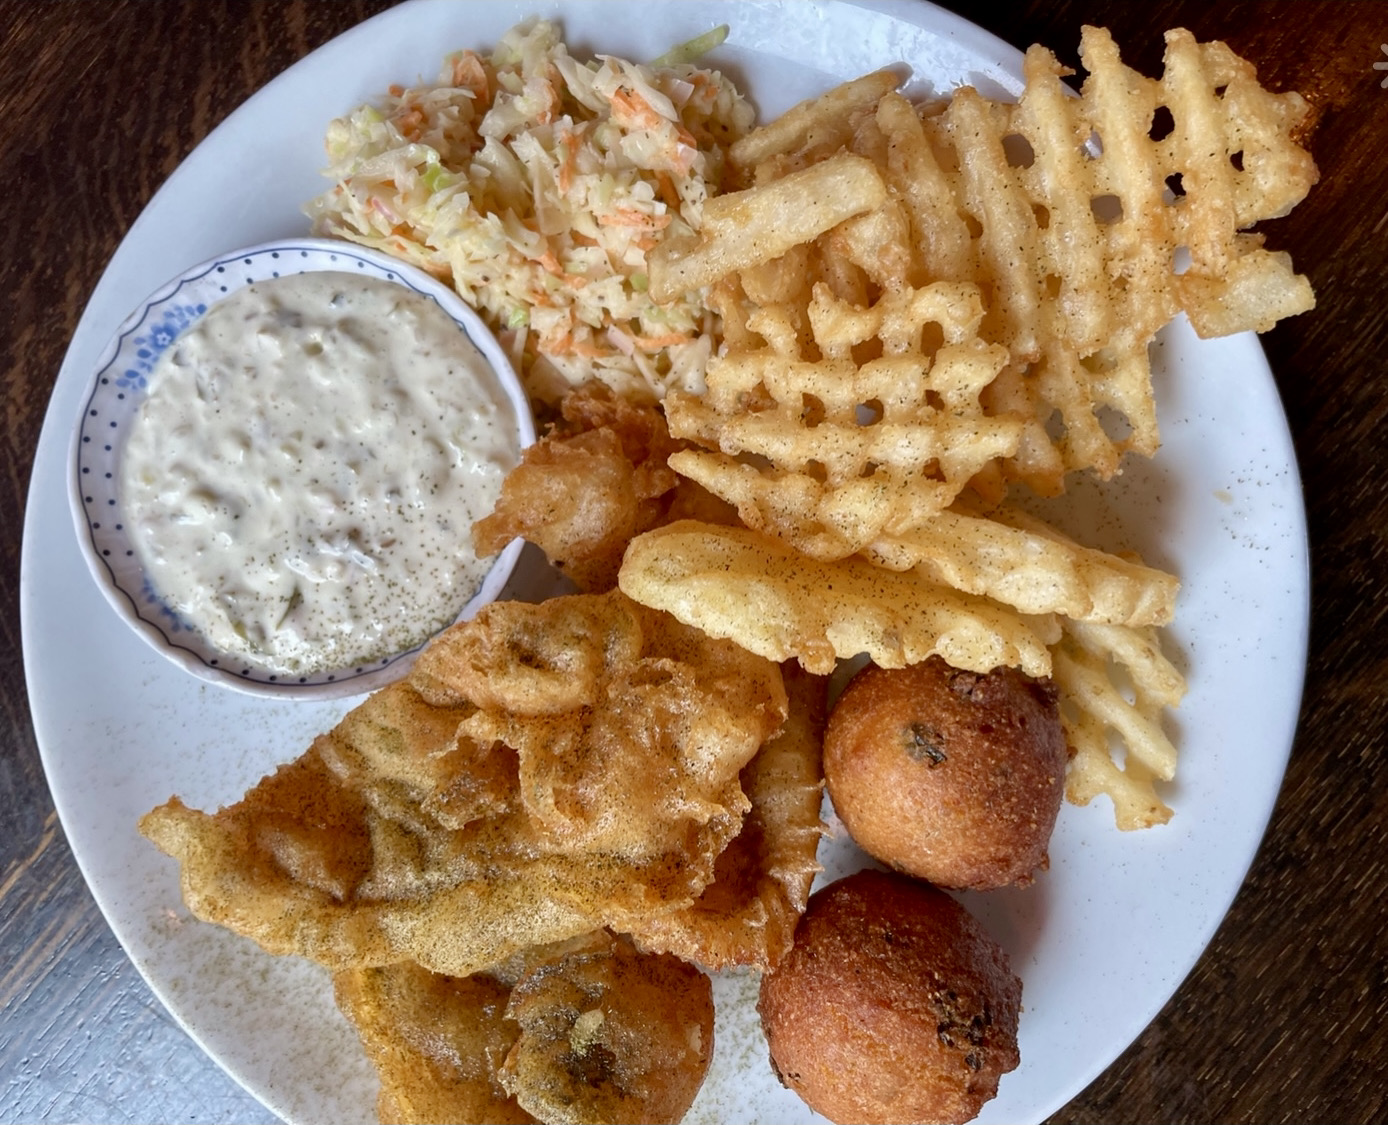 Fish fry with waffle fries, coleslaw, hush puppies